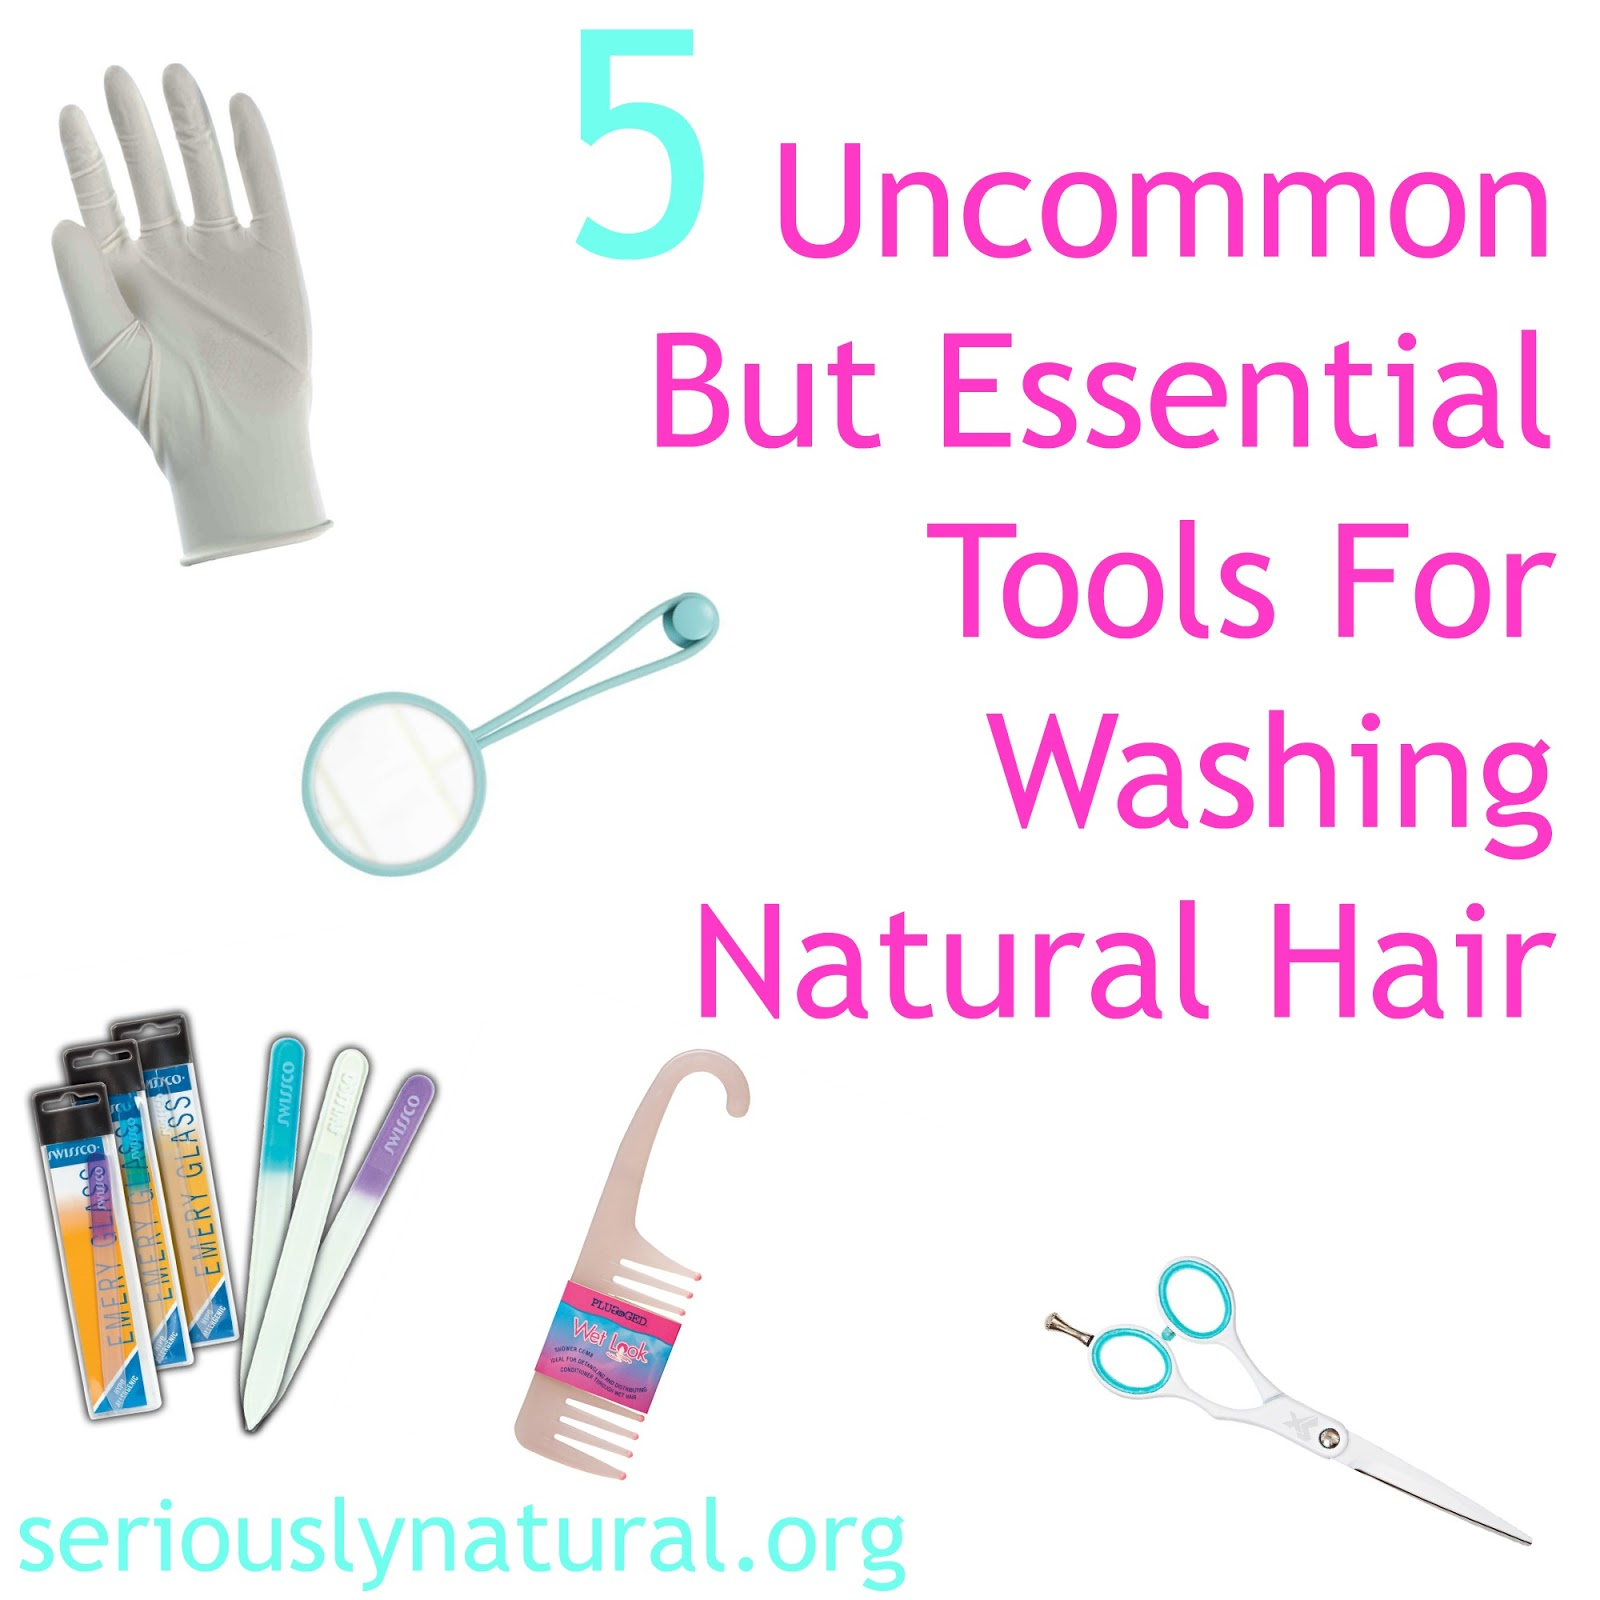 5 Uncommon But Essential Tools For Washing Natural Hair